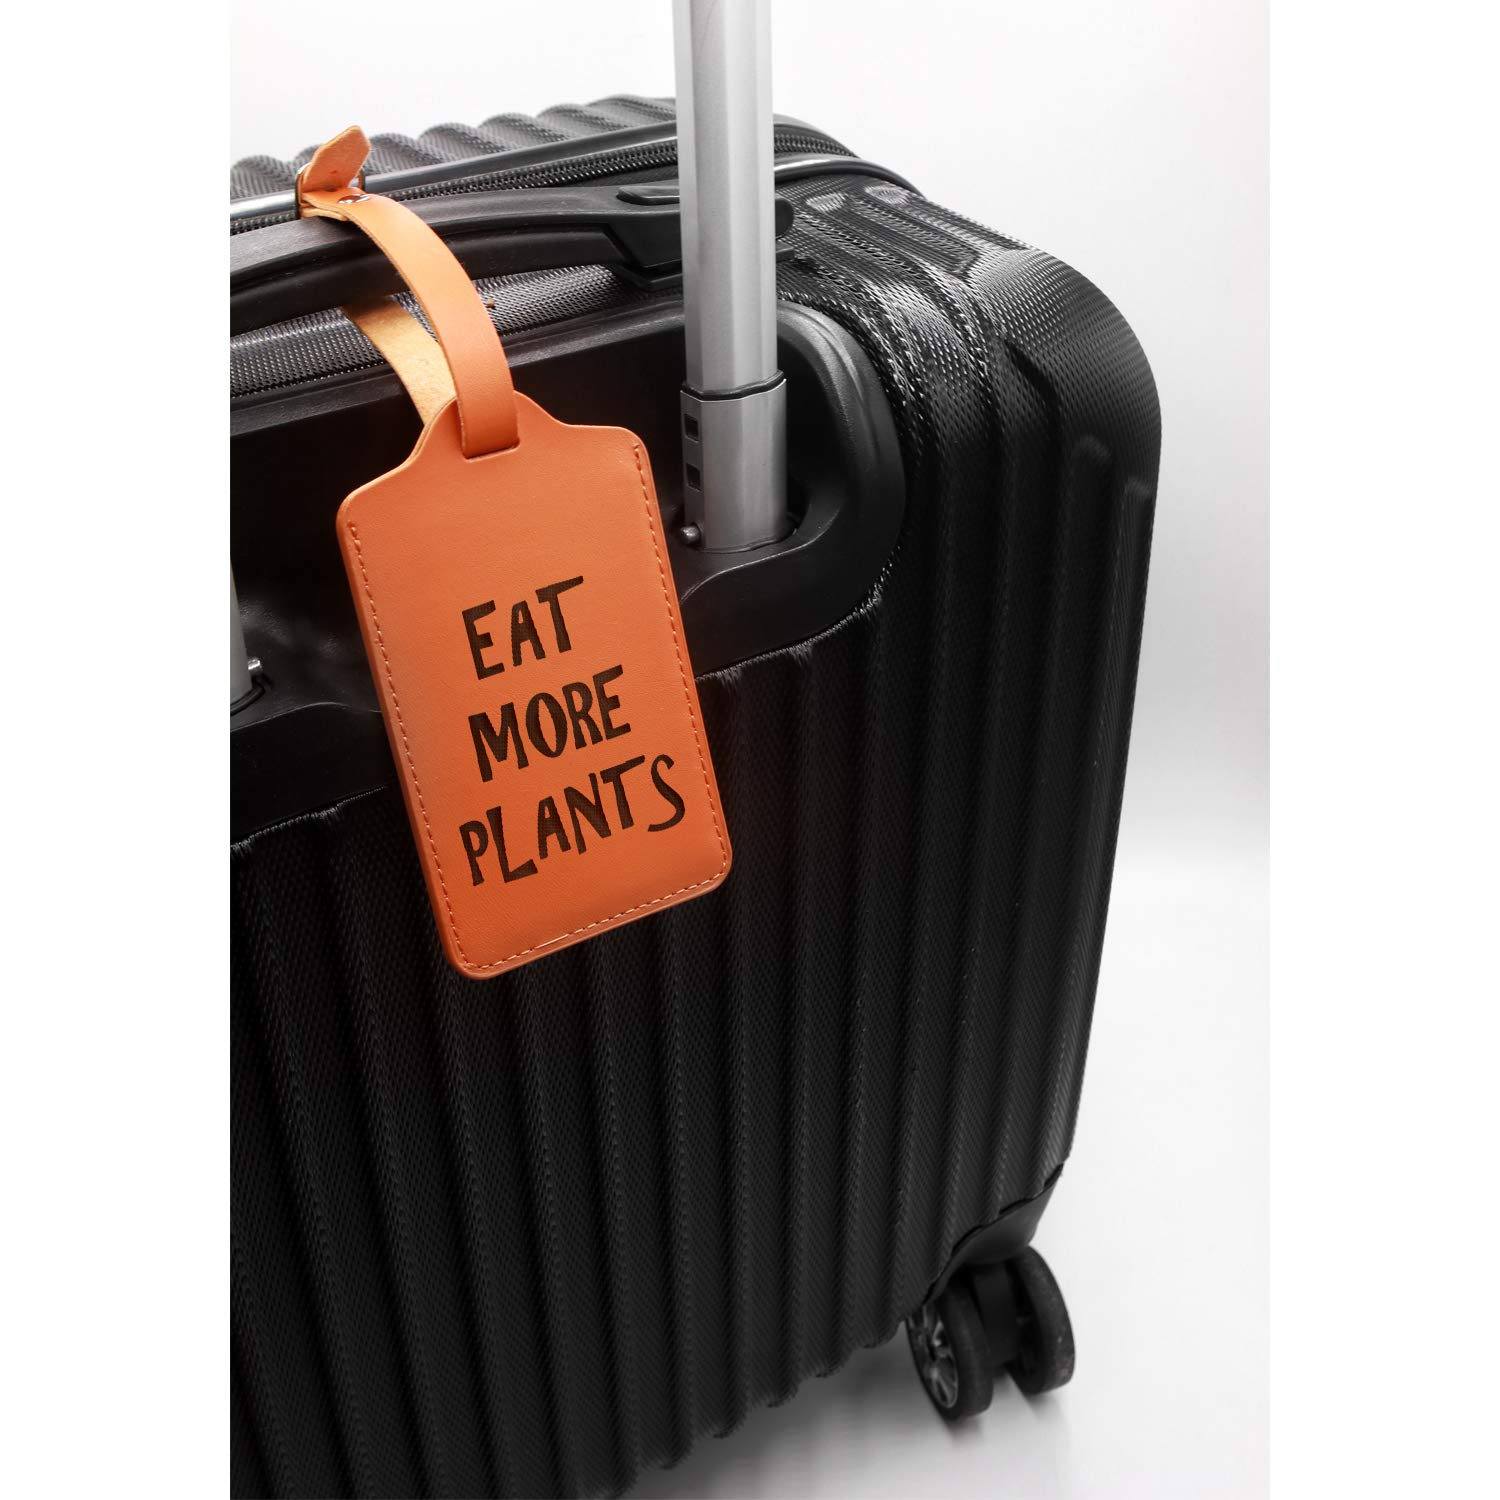 For Any Type Of Luggage Handcrafted By Mastercraftsmen Eat More Plants Quotes Engraved Synthetic Pu Leather Luggage Tag - United States Standard London Tan - Set Of 2